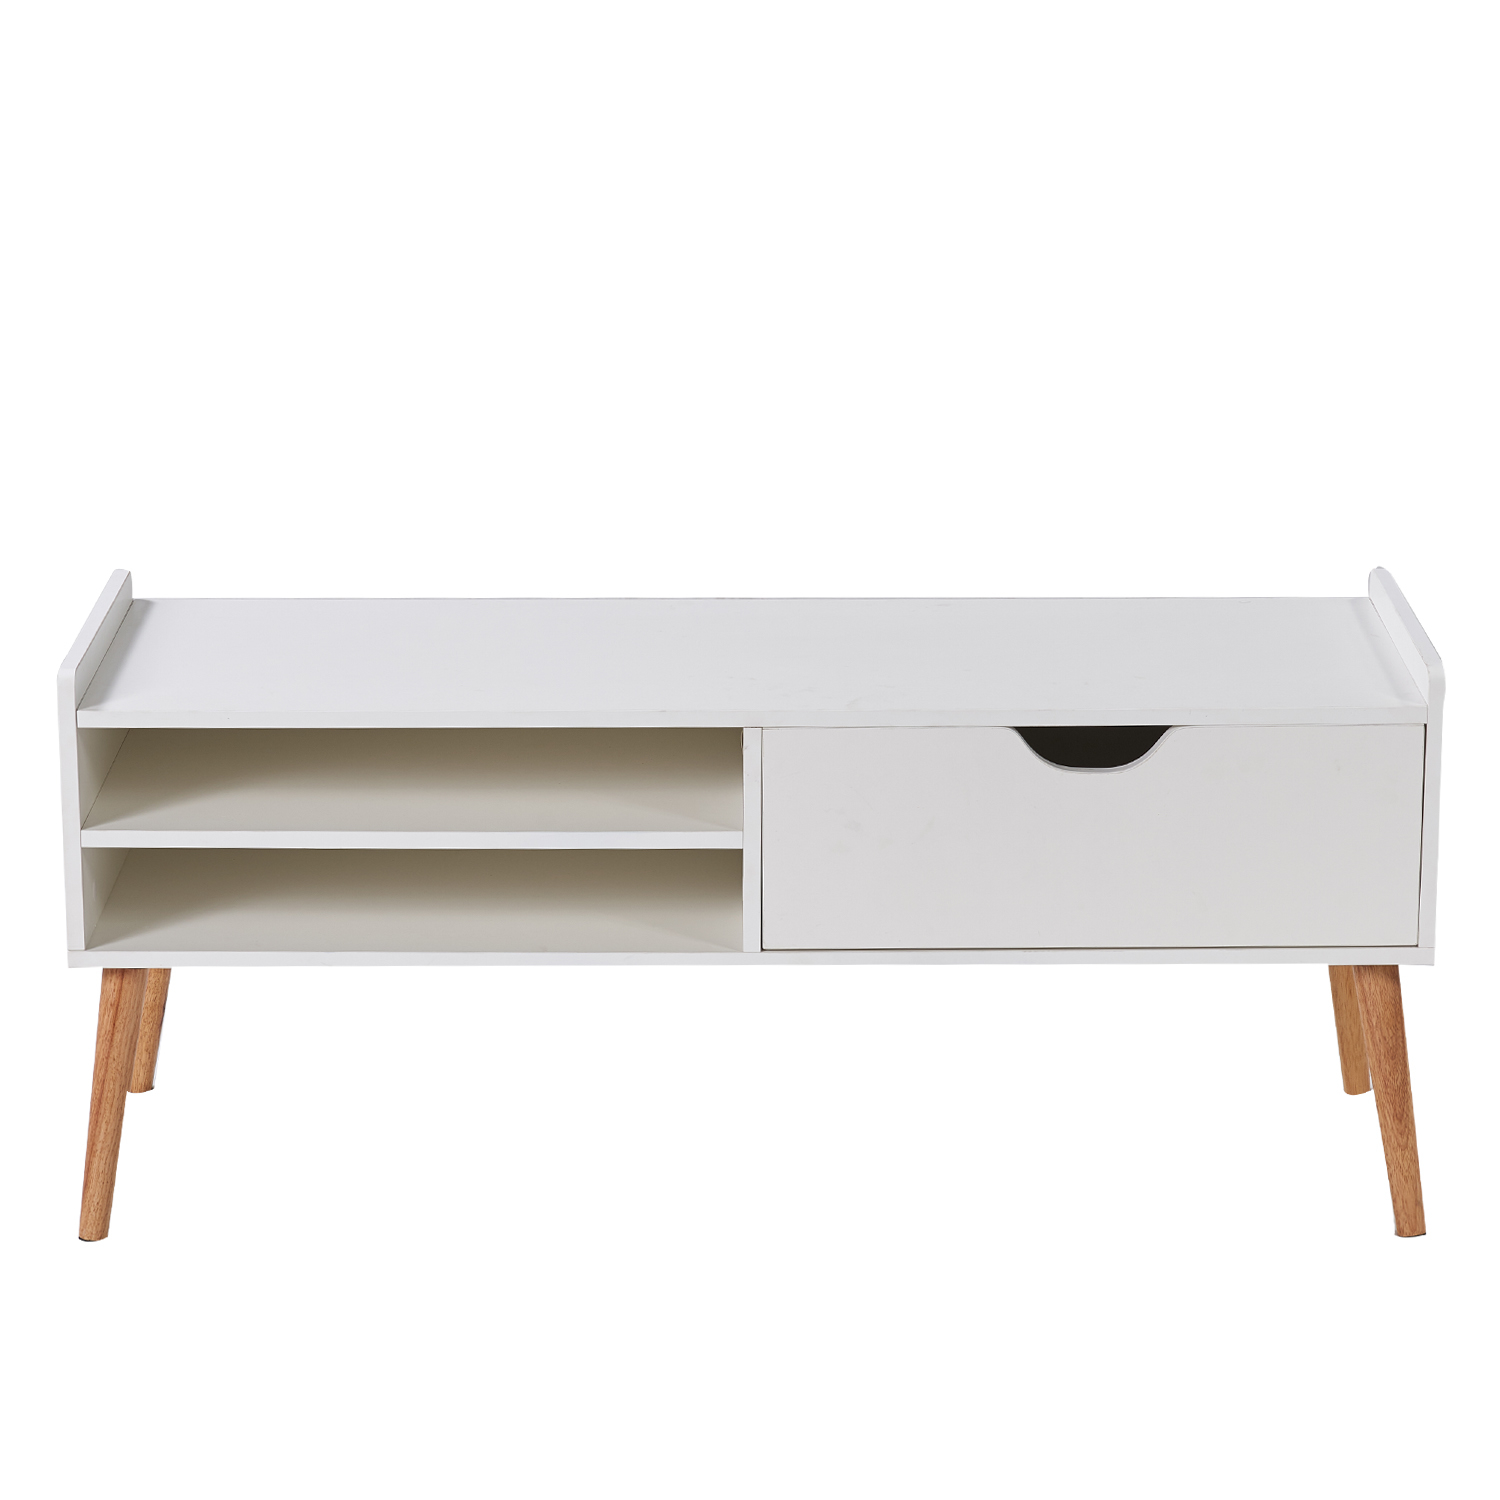 White Media TV Stand, Coffee Table Cabinet Storage, with Drawer and Open Shelf, Bedroom/Living Room 5aea77e9ef8526475821727e